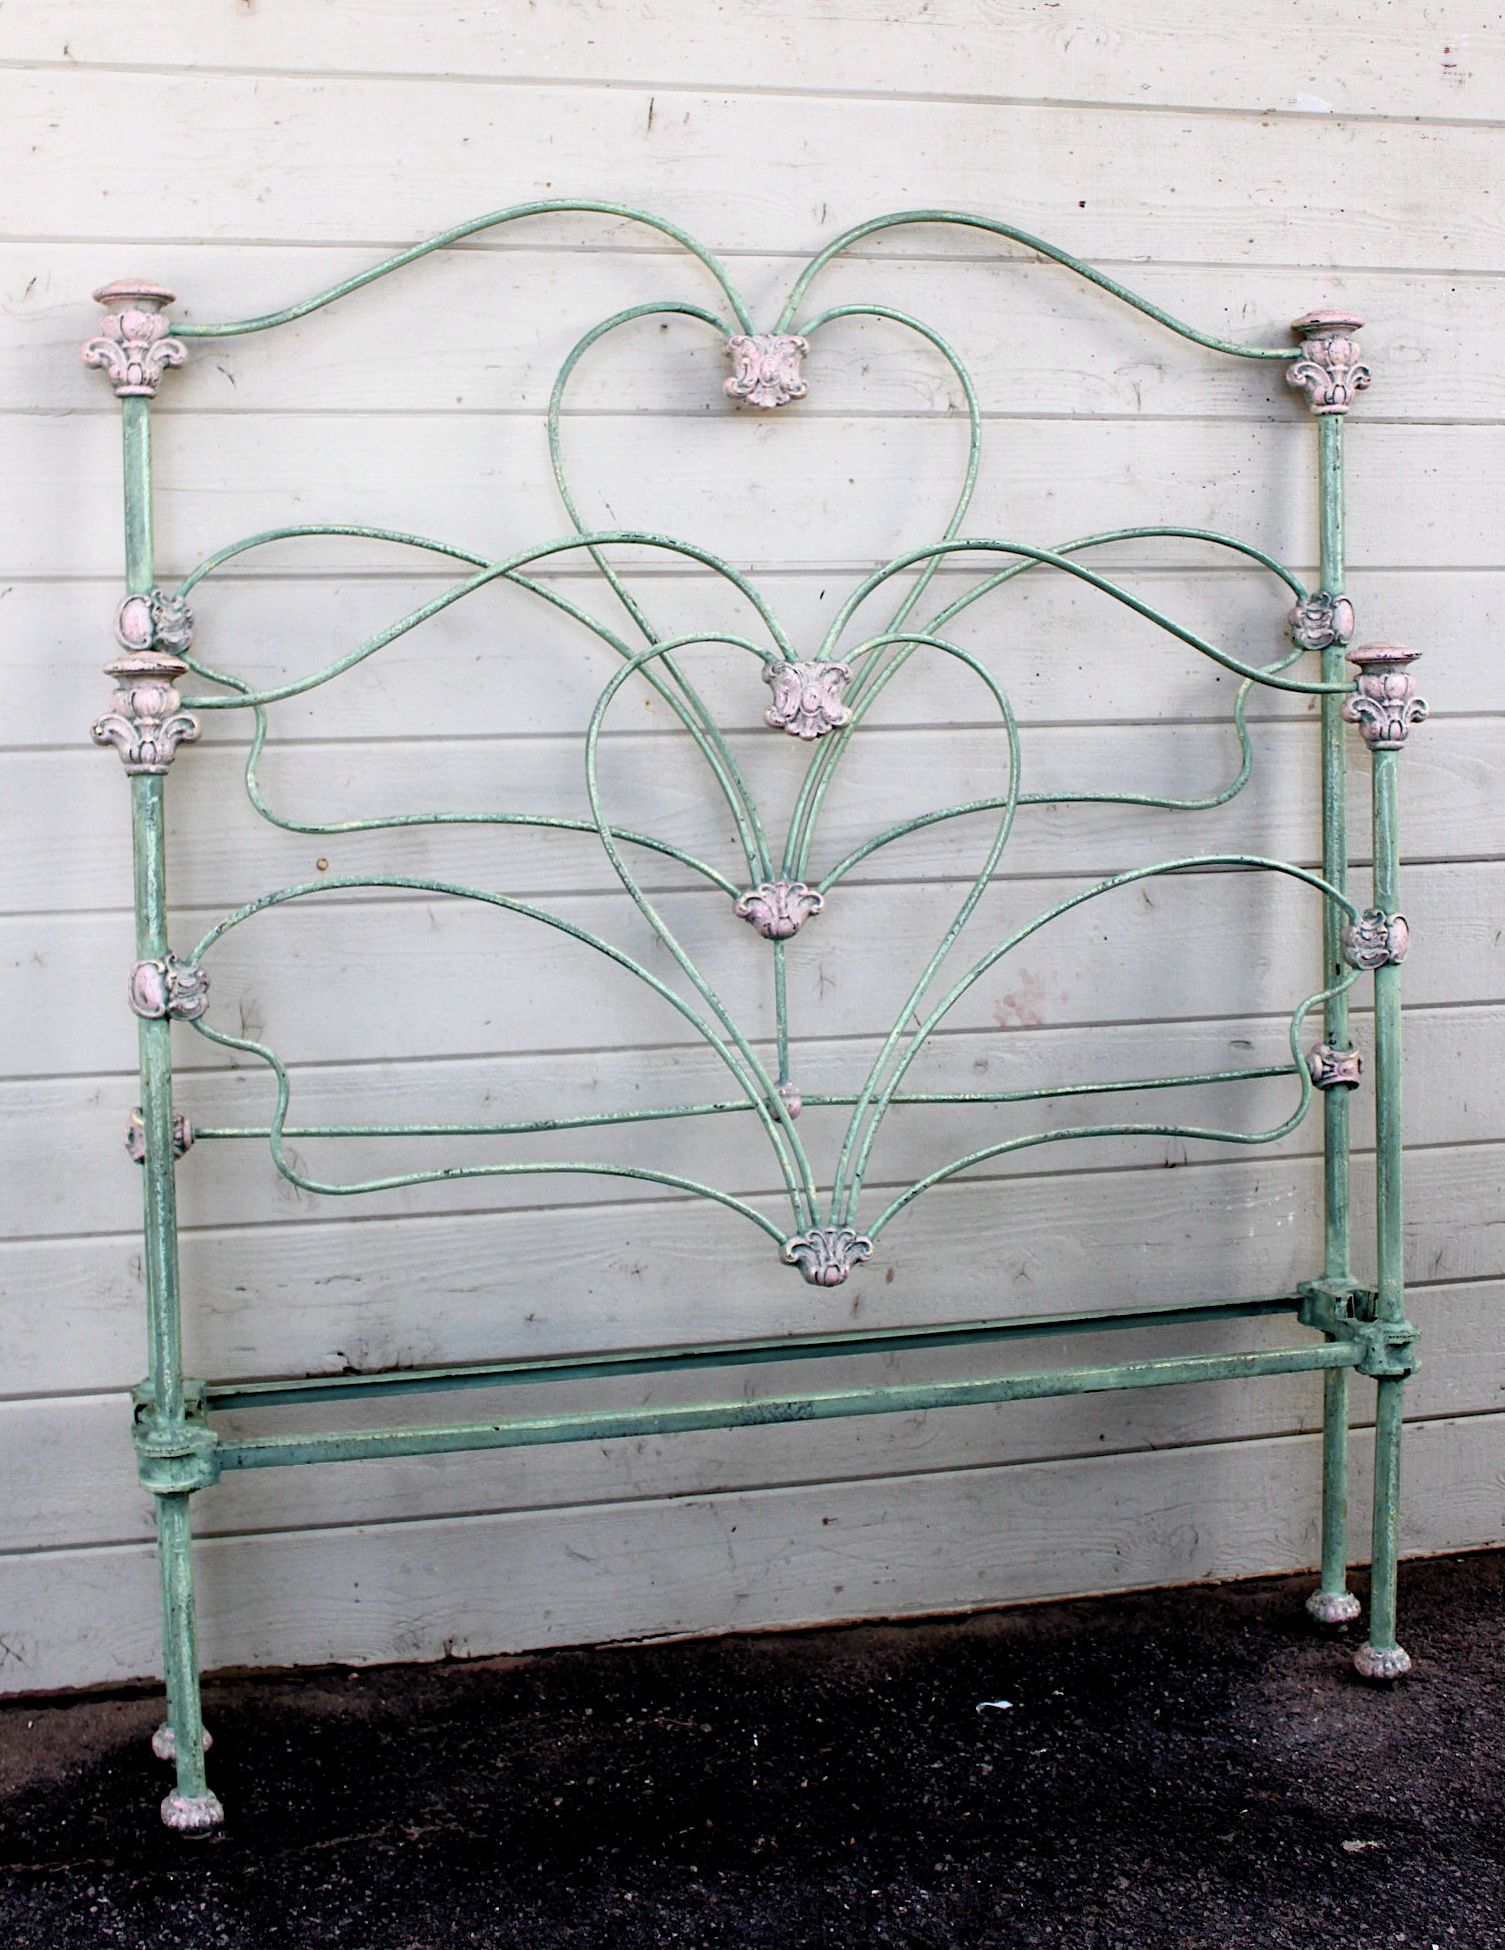 Antique Iron Beds By Cathouse Beds Antique Iron Beds Iron Bed Iron Twin Bed